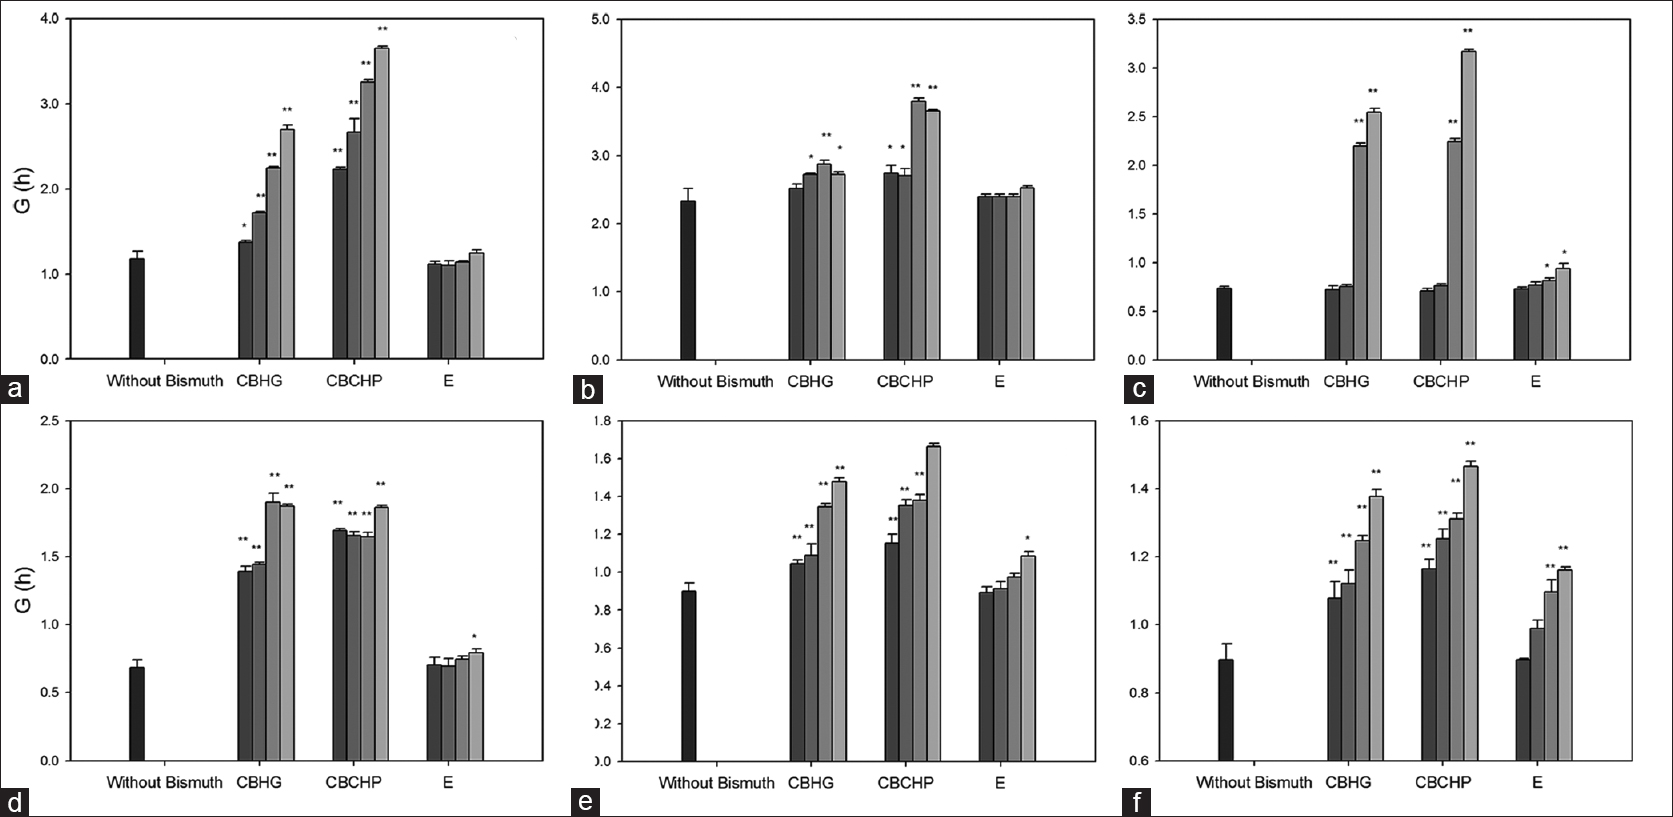 Figure 2: Generation time (G) as a function of treatment with the compounds at different concentrations. Bacterial strains: (a) Salmonella spp., (b) <i>Klebsiella pneumoniae</i>, (c) <i>Shigella flexneri</i>, (d) Shigatoxigenic <i>Escherichia coli</i>, (e) enteropathogenic <i>Escherichia coli</i> and (f) <i>Escherichia coli</i> ATCC 25922. Compounds: CBCHP: Chobet® bismuth cream with pectin, CBHG: Colloidal bismuth hydroxide gel, E: Excipients. Concentration of bismuth (grayscale): Without bismuth ([INSIDE:6]); 0.06 mg/ml ([INSIDE:7]); 0.12 mg/ml ([INSIDE:8]); 0.3 mg/ml ([INSIDE:9]) and 0.6 mg/ml ([INSIDE:10]). *(<i>P</i> < 0.05), **(<i>P</i> < 0.01)